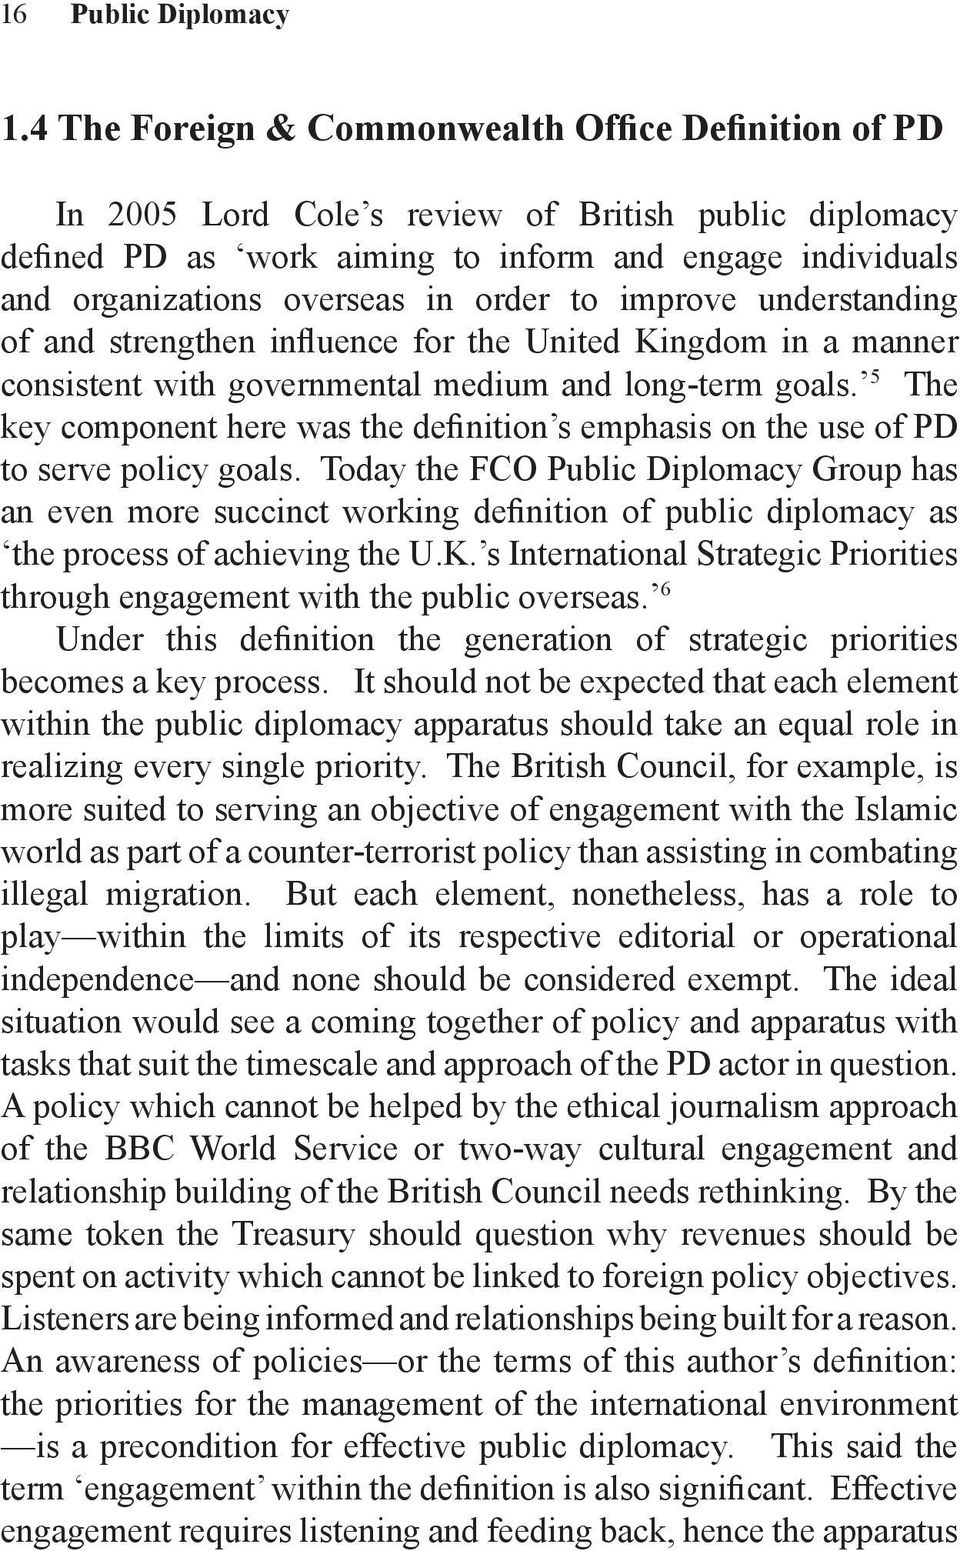 order to improve understanding of and strengthen influence for the United Kingdom in a manner consistent with governmental medium and long-term goals.